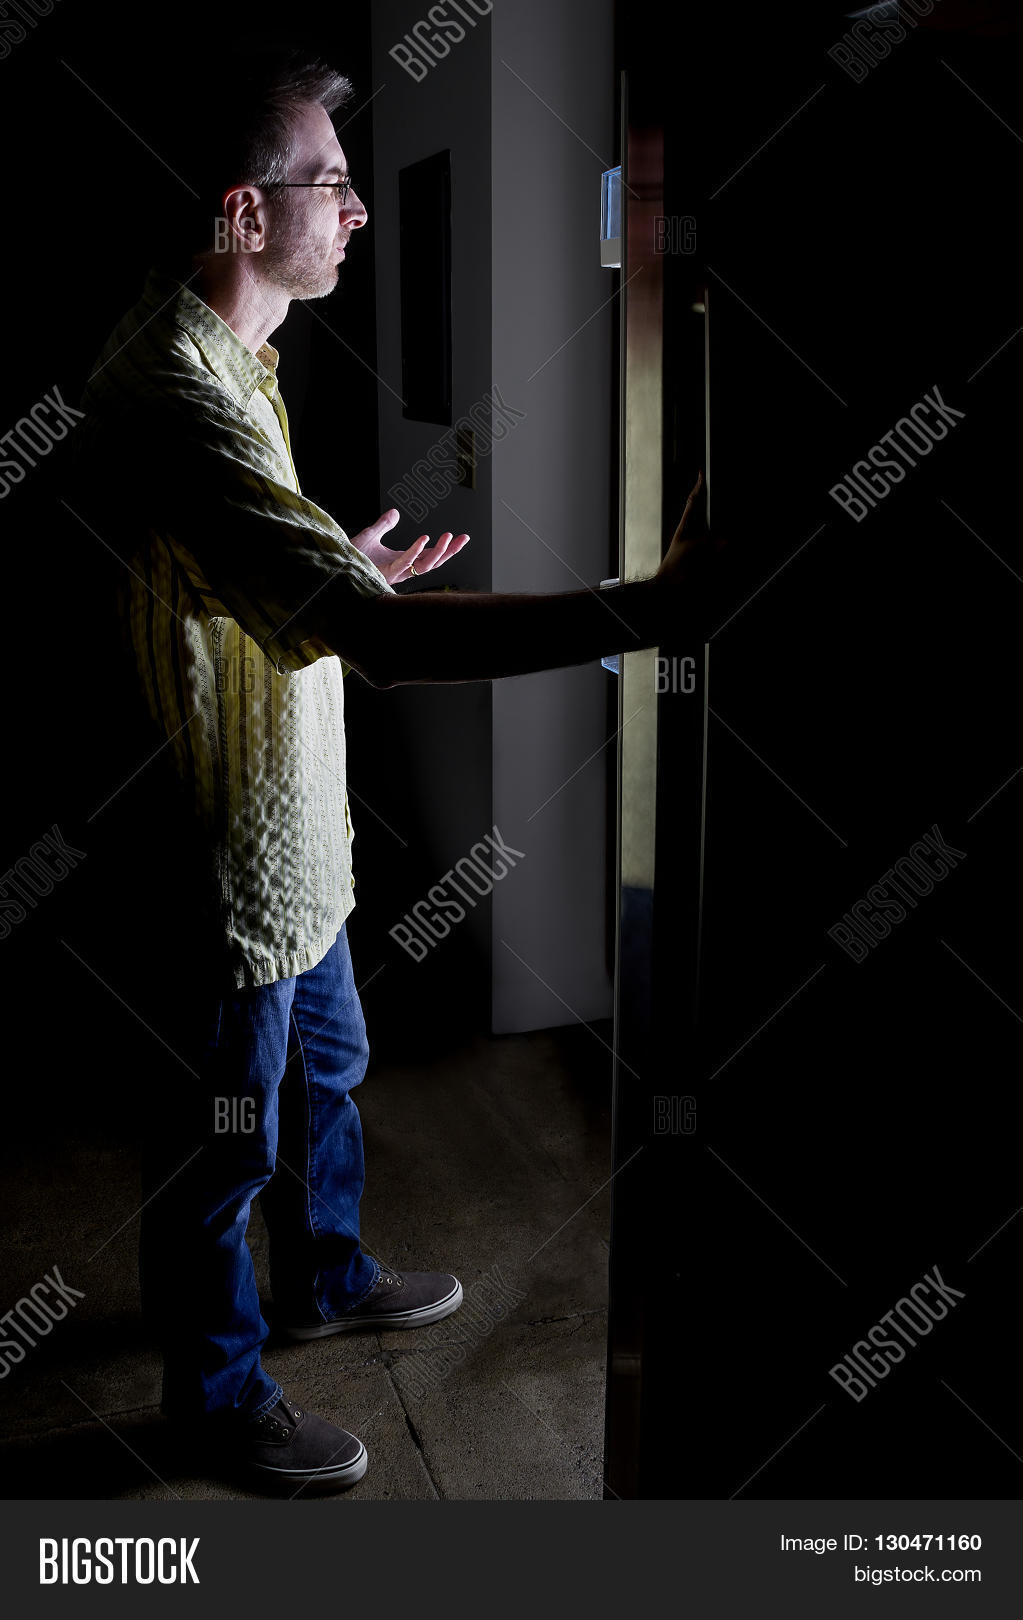 Dark Kitchen At Night man looking for food in an open fridge in a dark kitchen late at